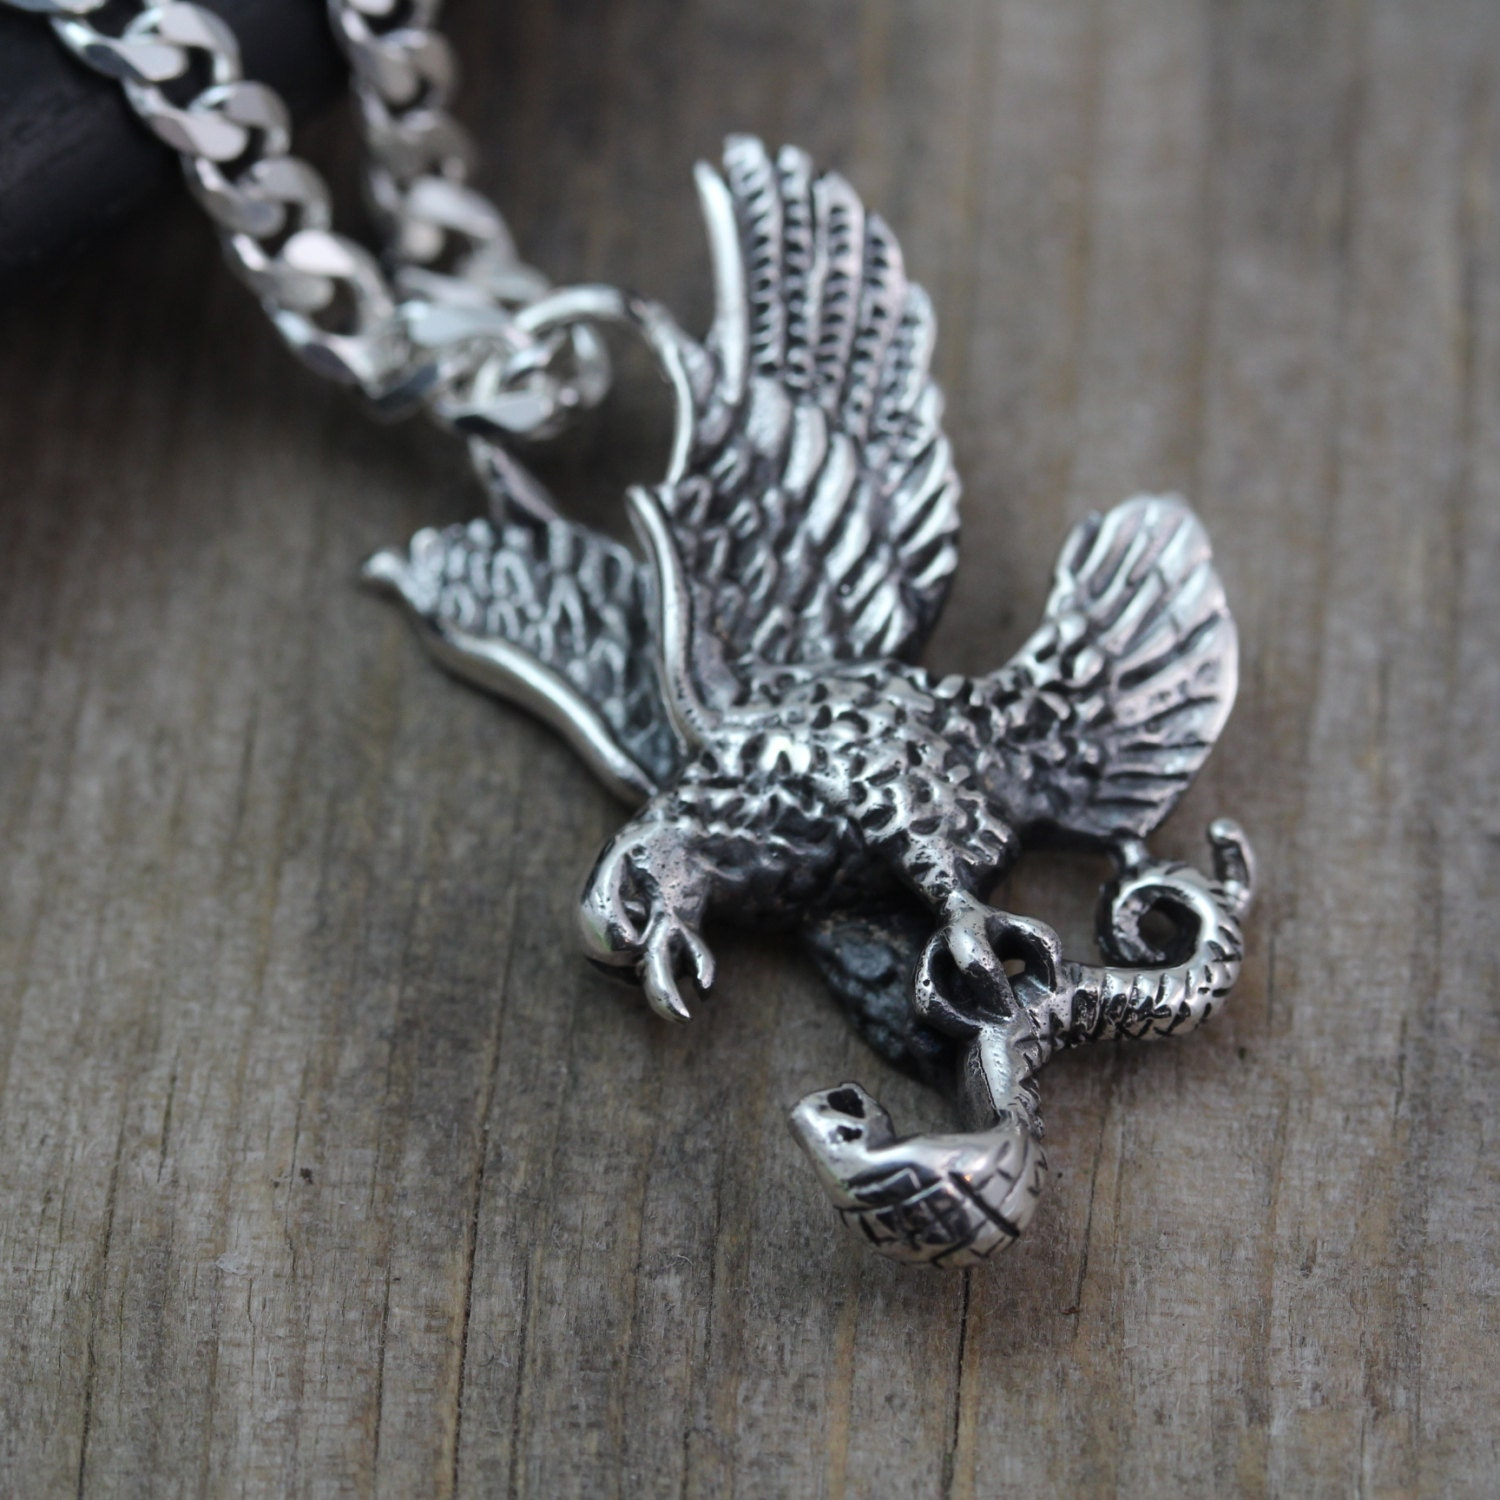 Sterling Silver Eagle Necklace Mens Necklace By Lifeofsilver. White Gold Band Rings. Channel Set Wedding Rings. Yin Yang Pendant. Nut Necklace. 18kt Gold Anklet. Light Emerald. Customized Chains. Spinel Rings